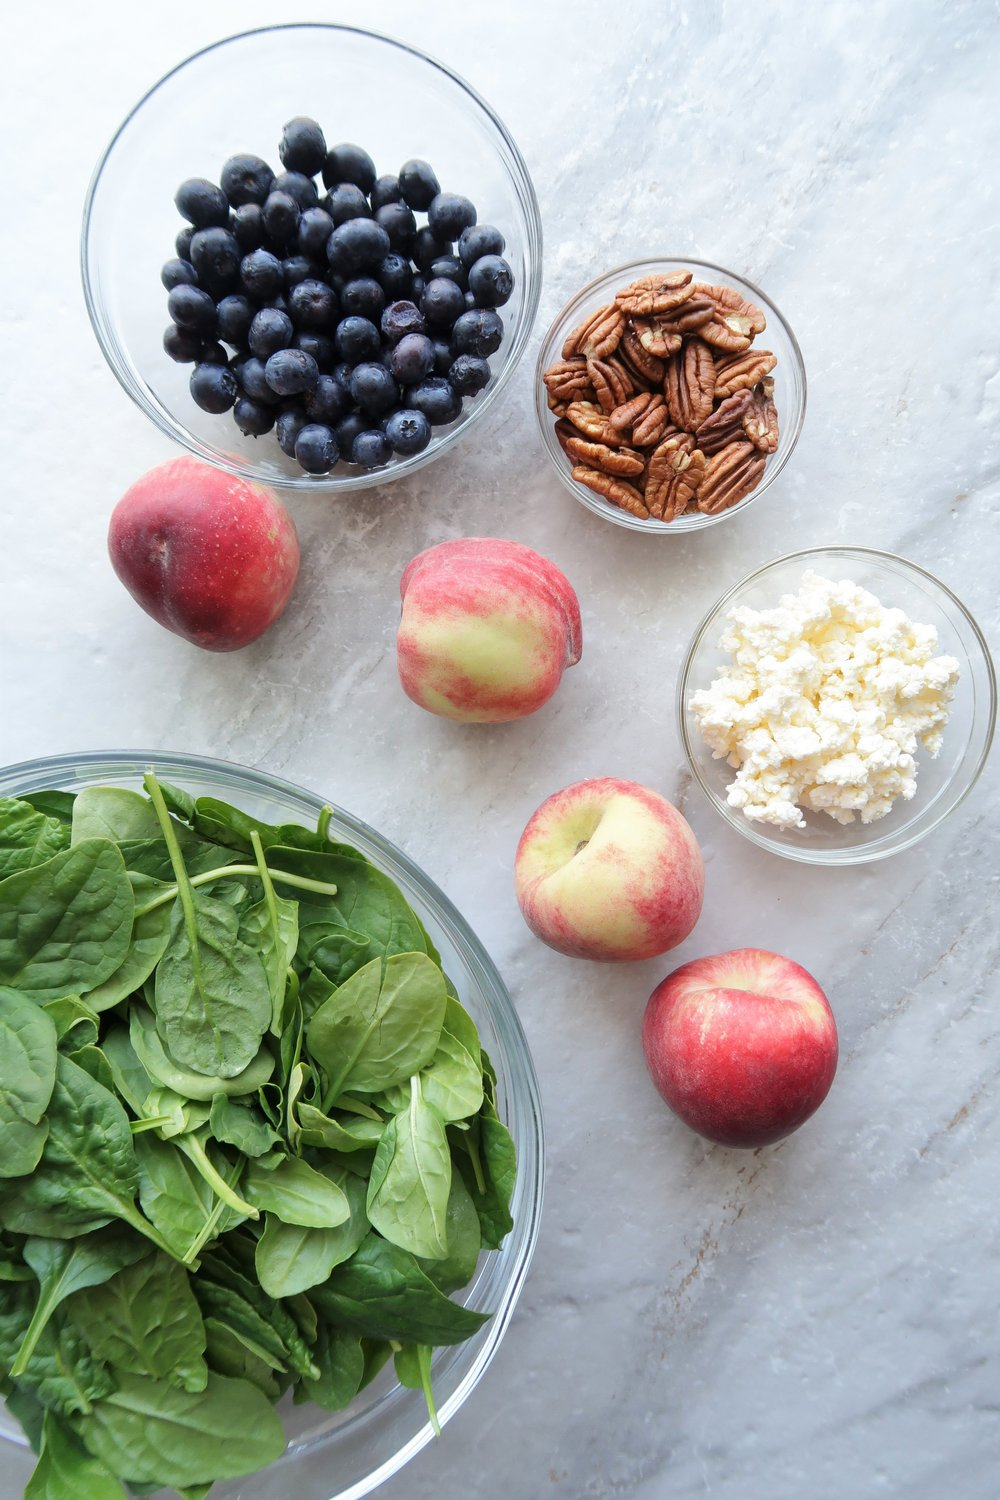 Glass bowls containing fresh, ripe blueberries, pecans, crumbled feta cheese, and bright green spinach with four whole peaches surrounding the bowls.